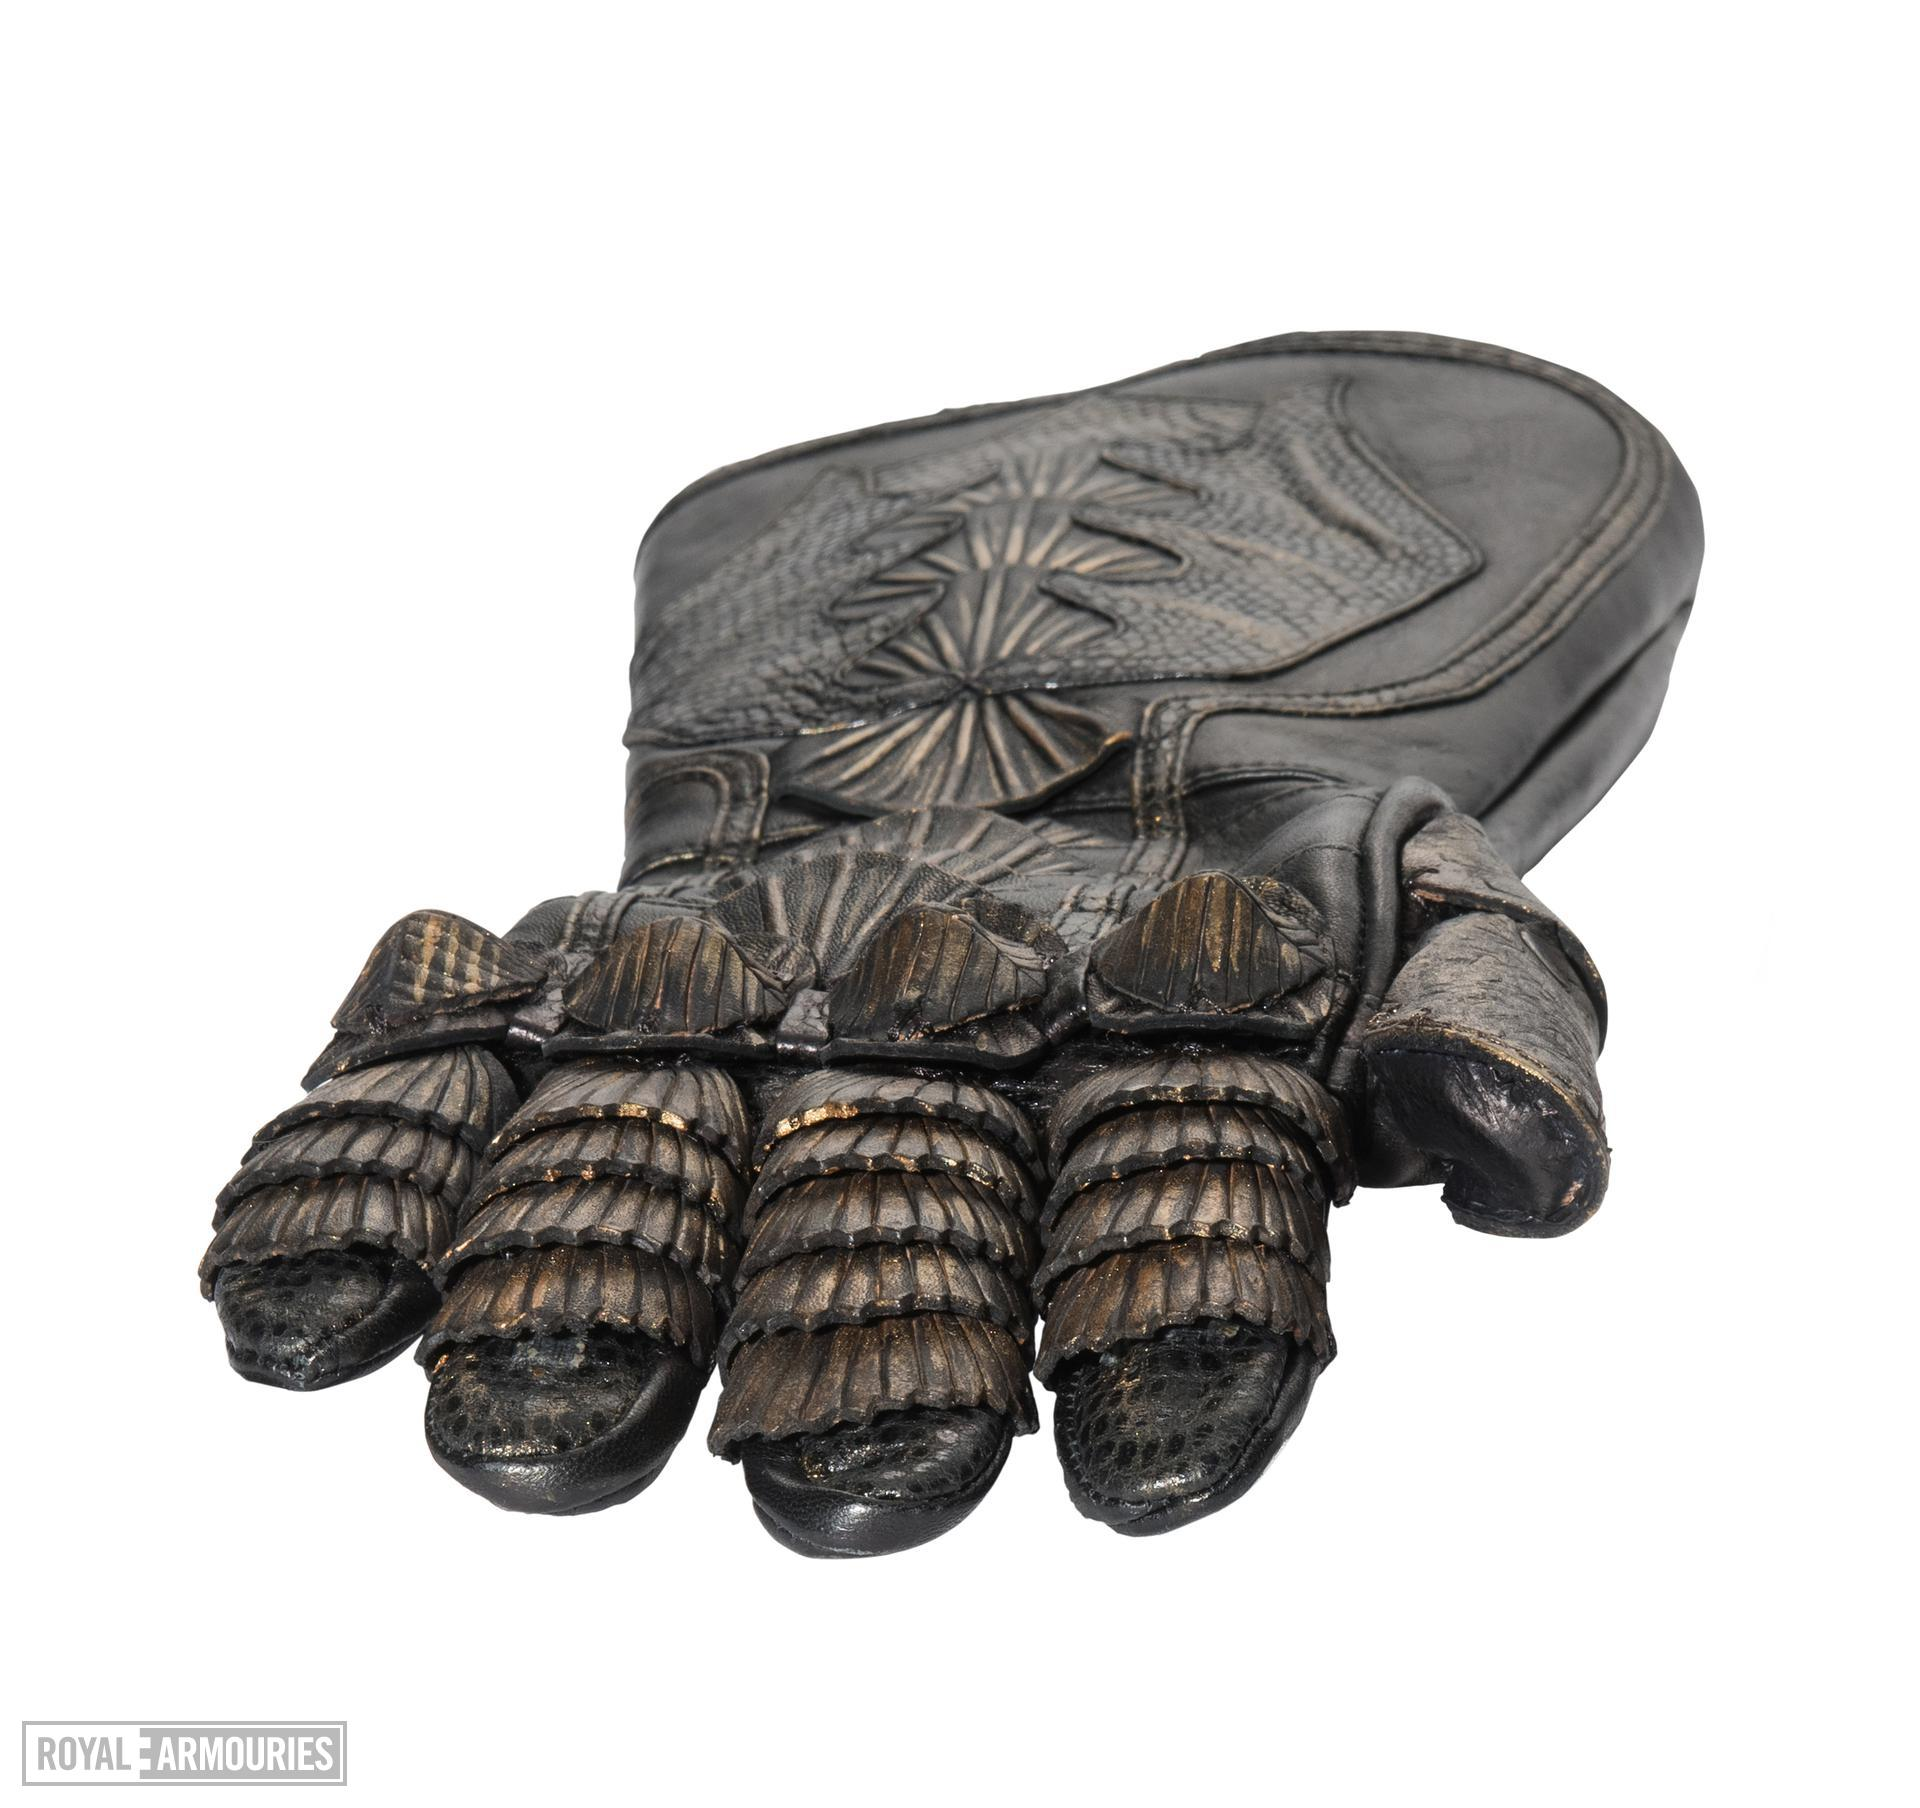 Right glove - Right glove from The Lord Marshal's Costume Part of the Lord Marshal's costume from the film the Chronicles of Riddick. Ornately decorated and highly detailed. Bronze and black in appearance but made from leather.